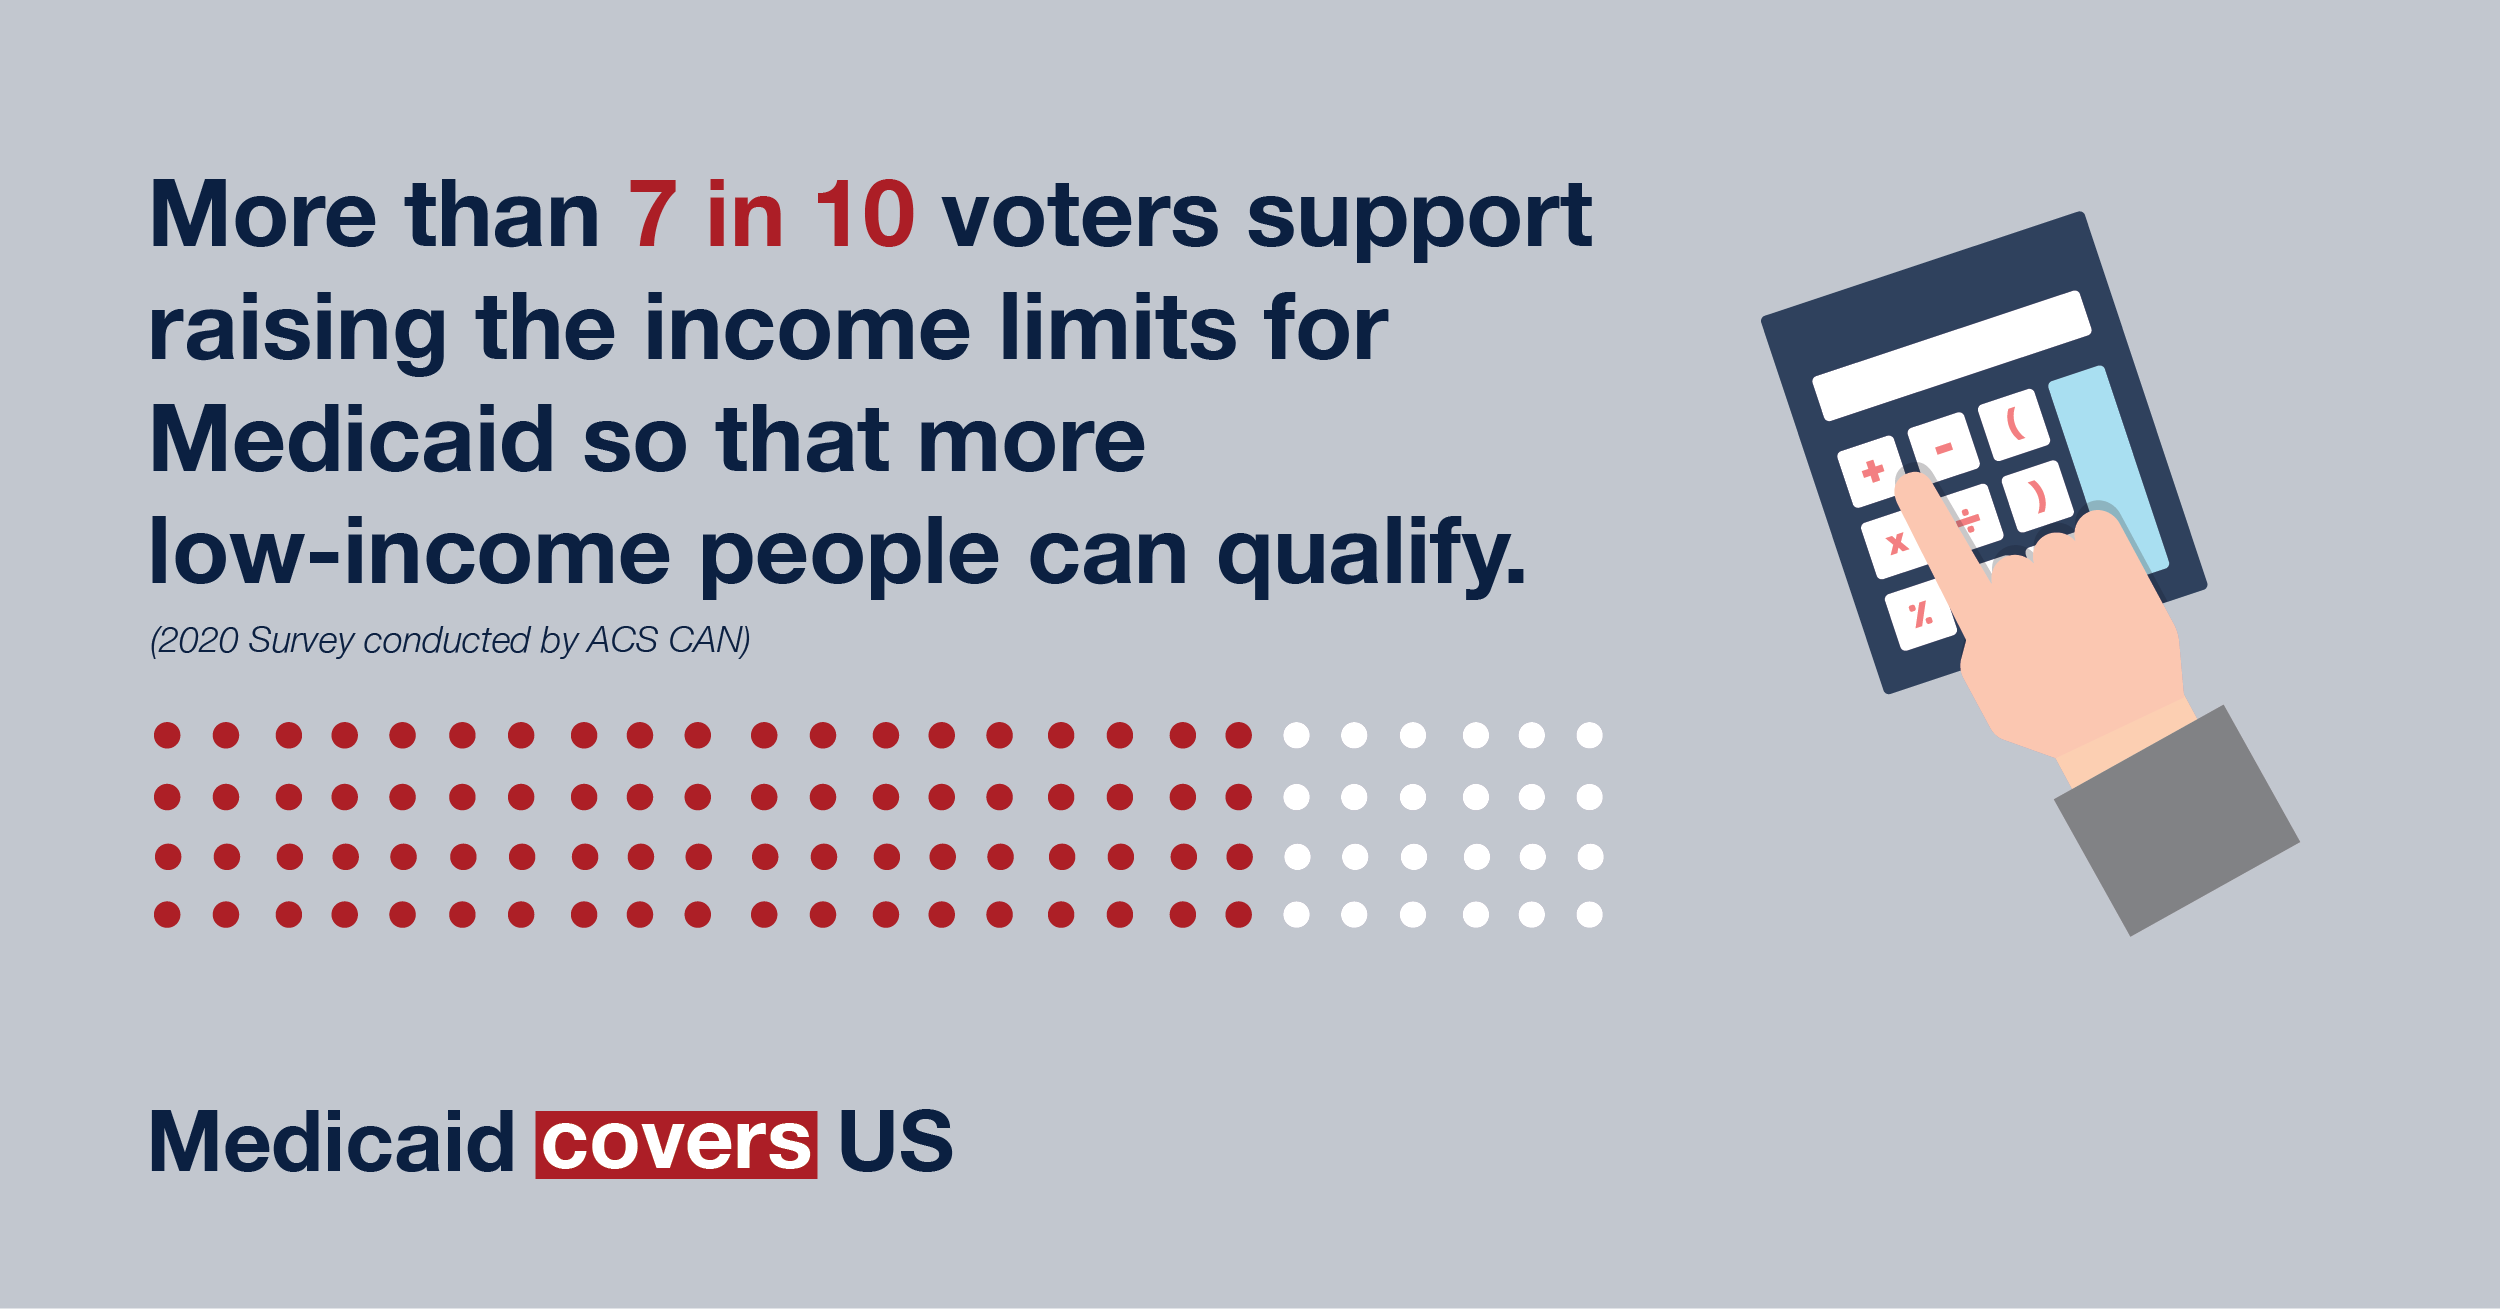 More than 7 in 10 voters support raising the income limits for Medicaid so that more low-income people can qualify.